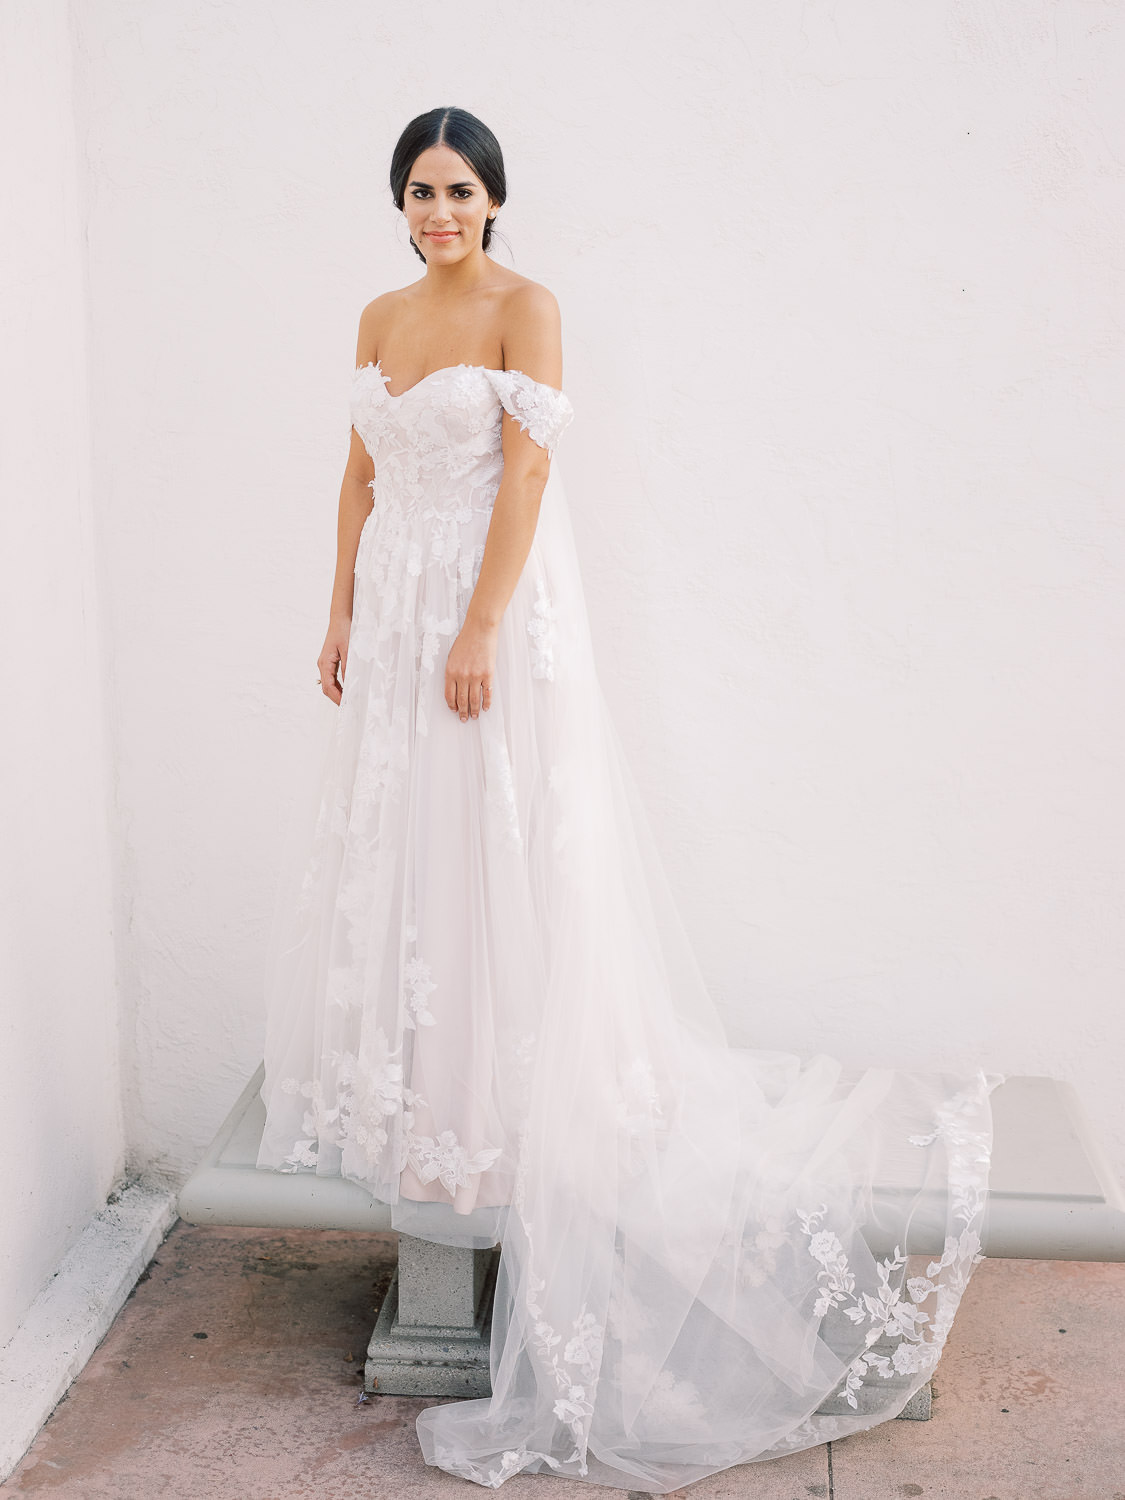 Bride-Dress-Inspiration